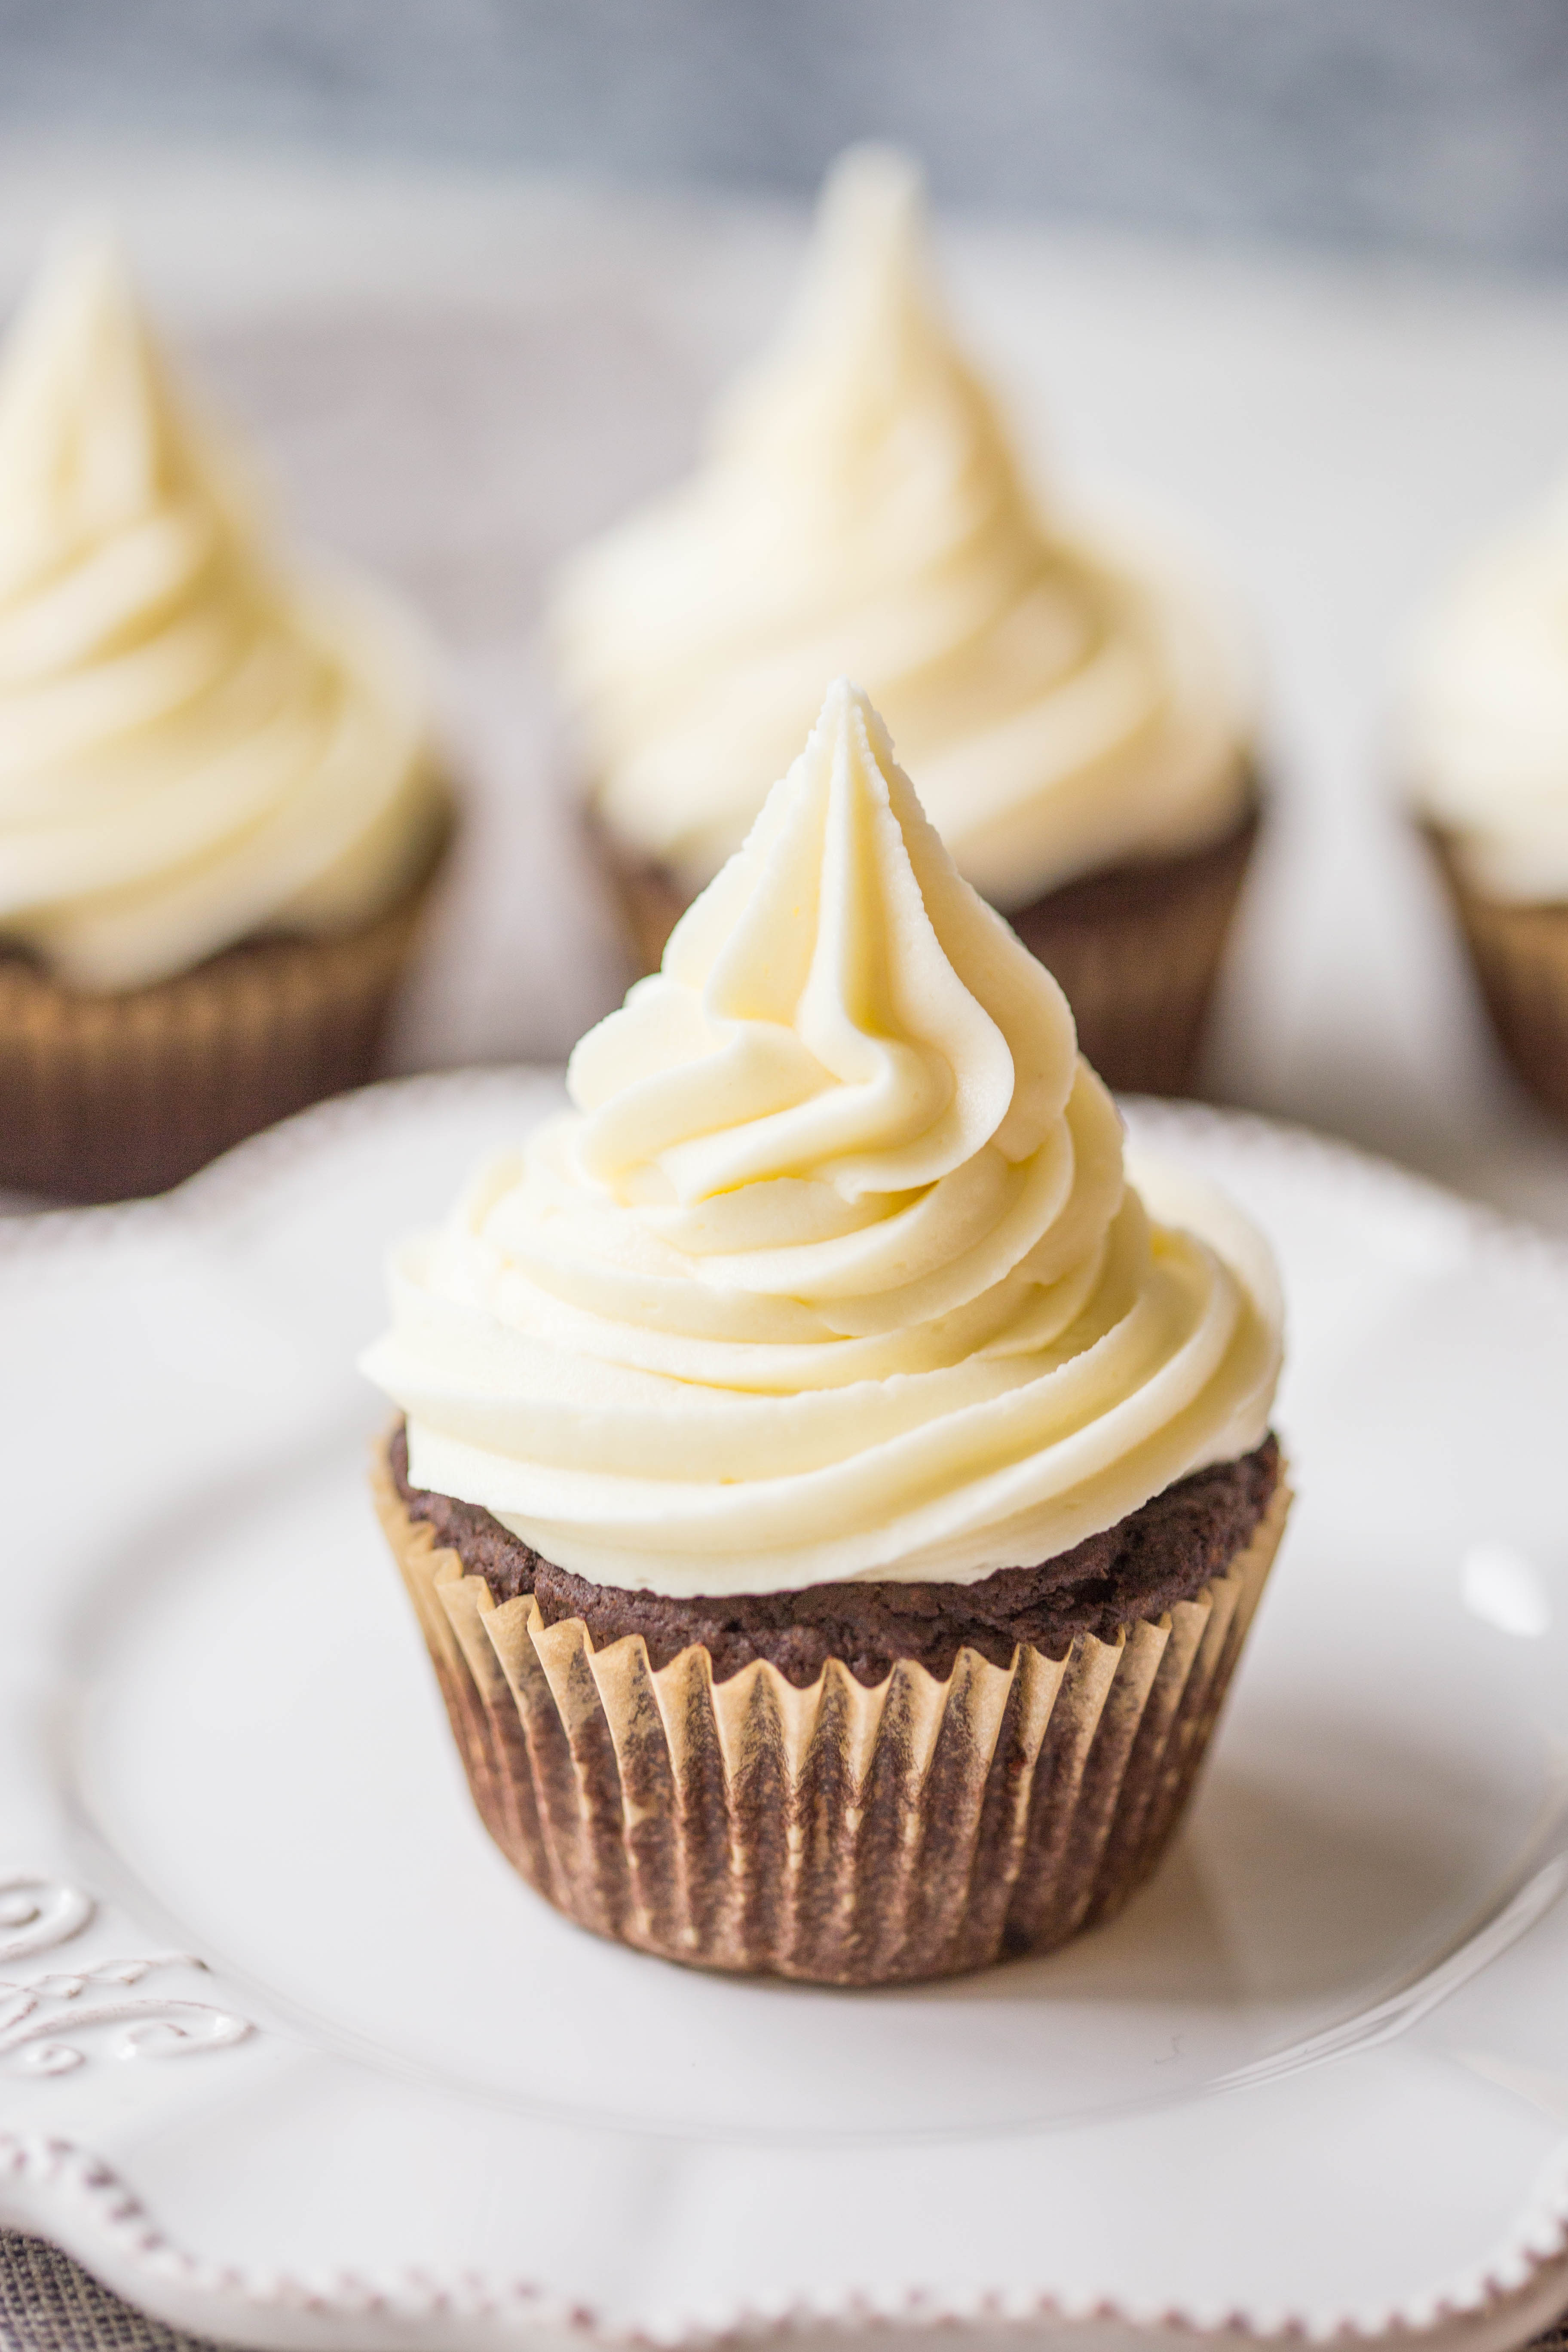 Caramel White Chocolate Cupcakes Wholesome Patisserie